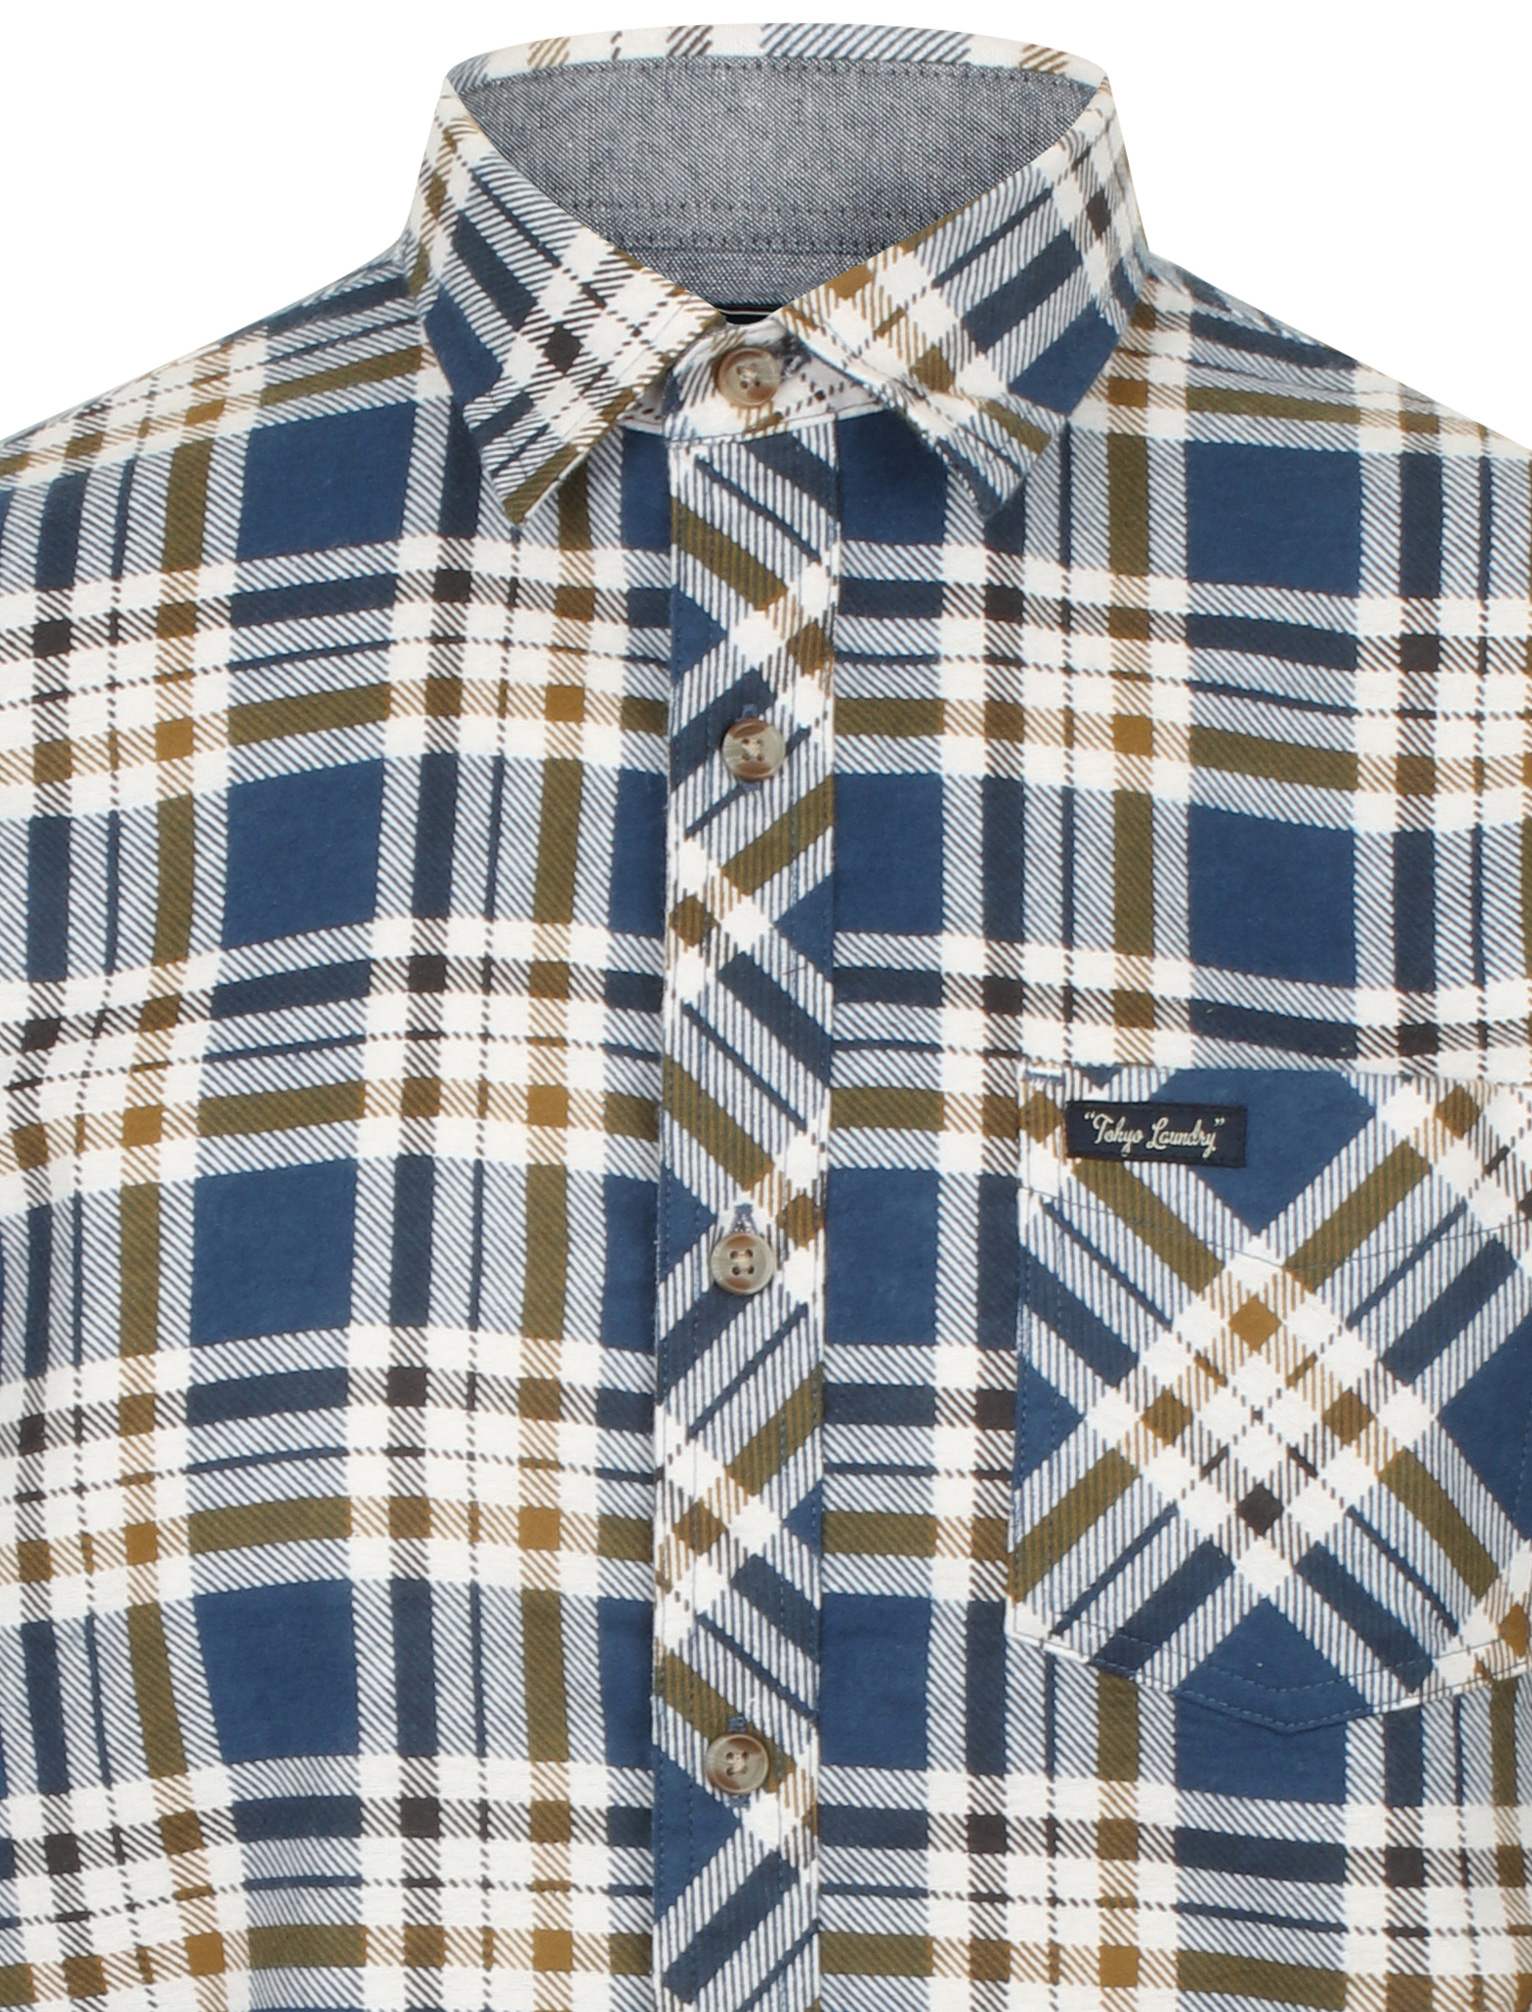 New-Mens-Tokyo-Laundry-Cotton-Long-Sleeve-Checked-Flannel-Shirt-Size-S-XXL thumbnail 17